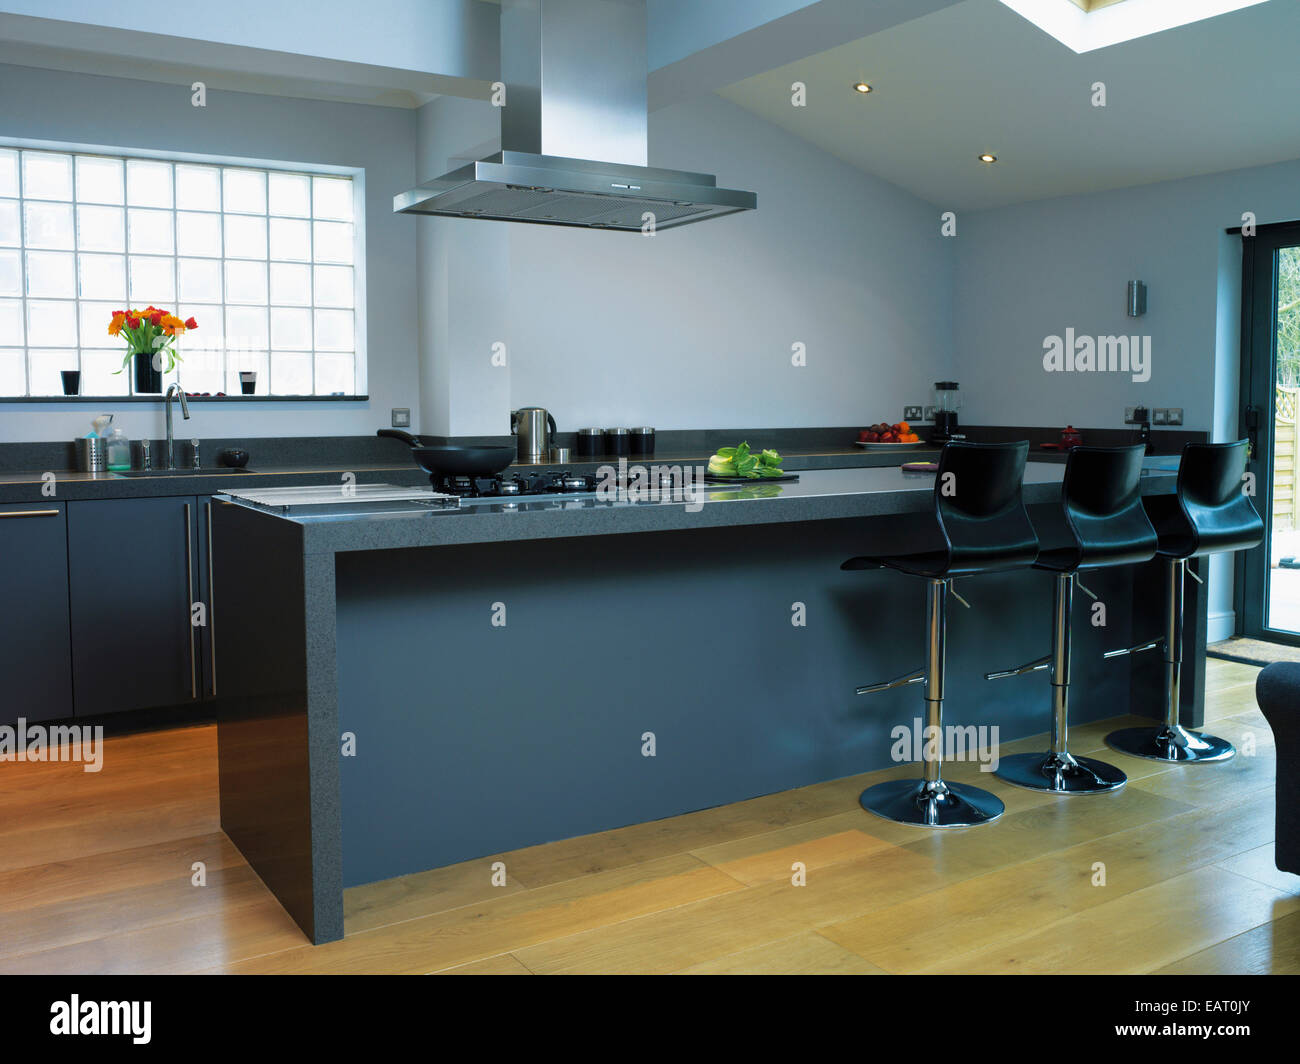 Extractor Fan Kitchen Island Stock Photos & Extractor Fan Kitchen ...